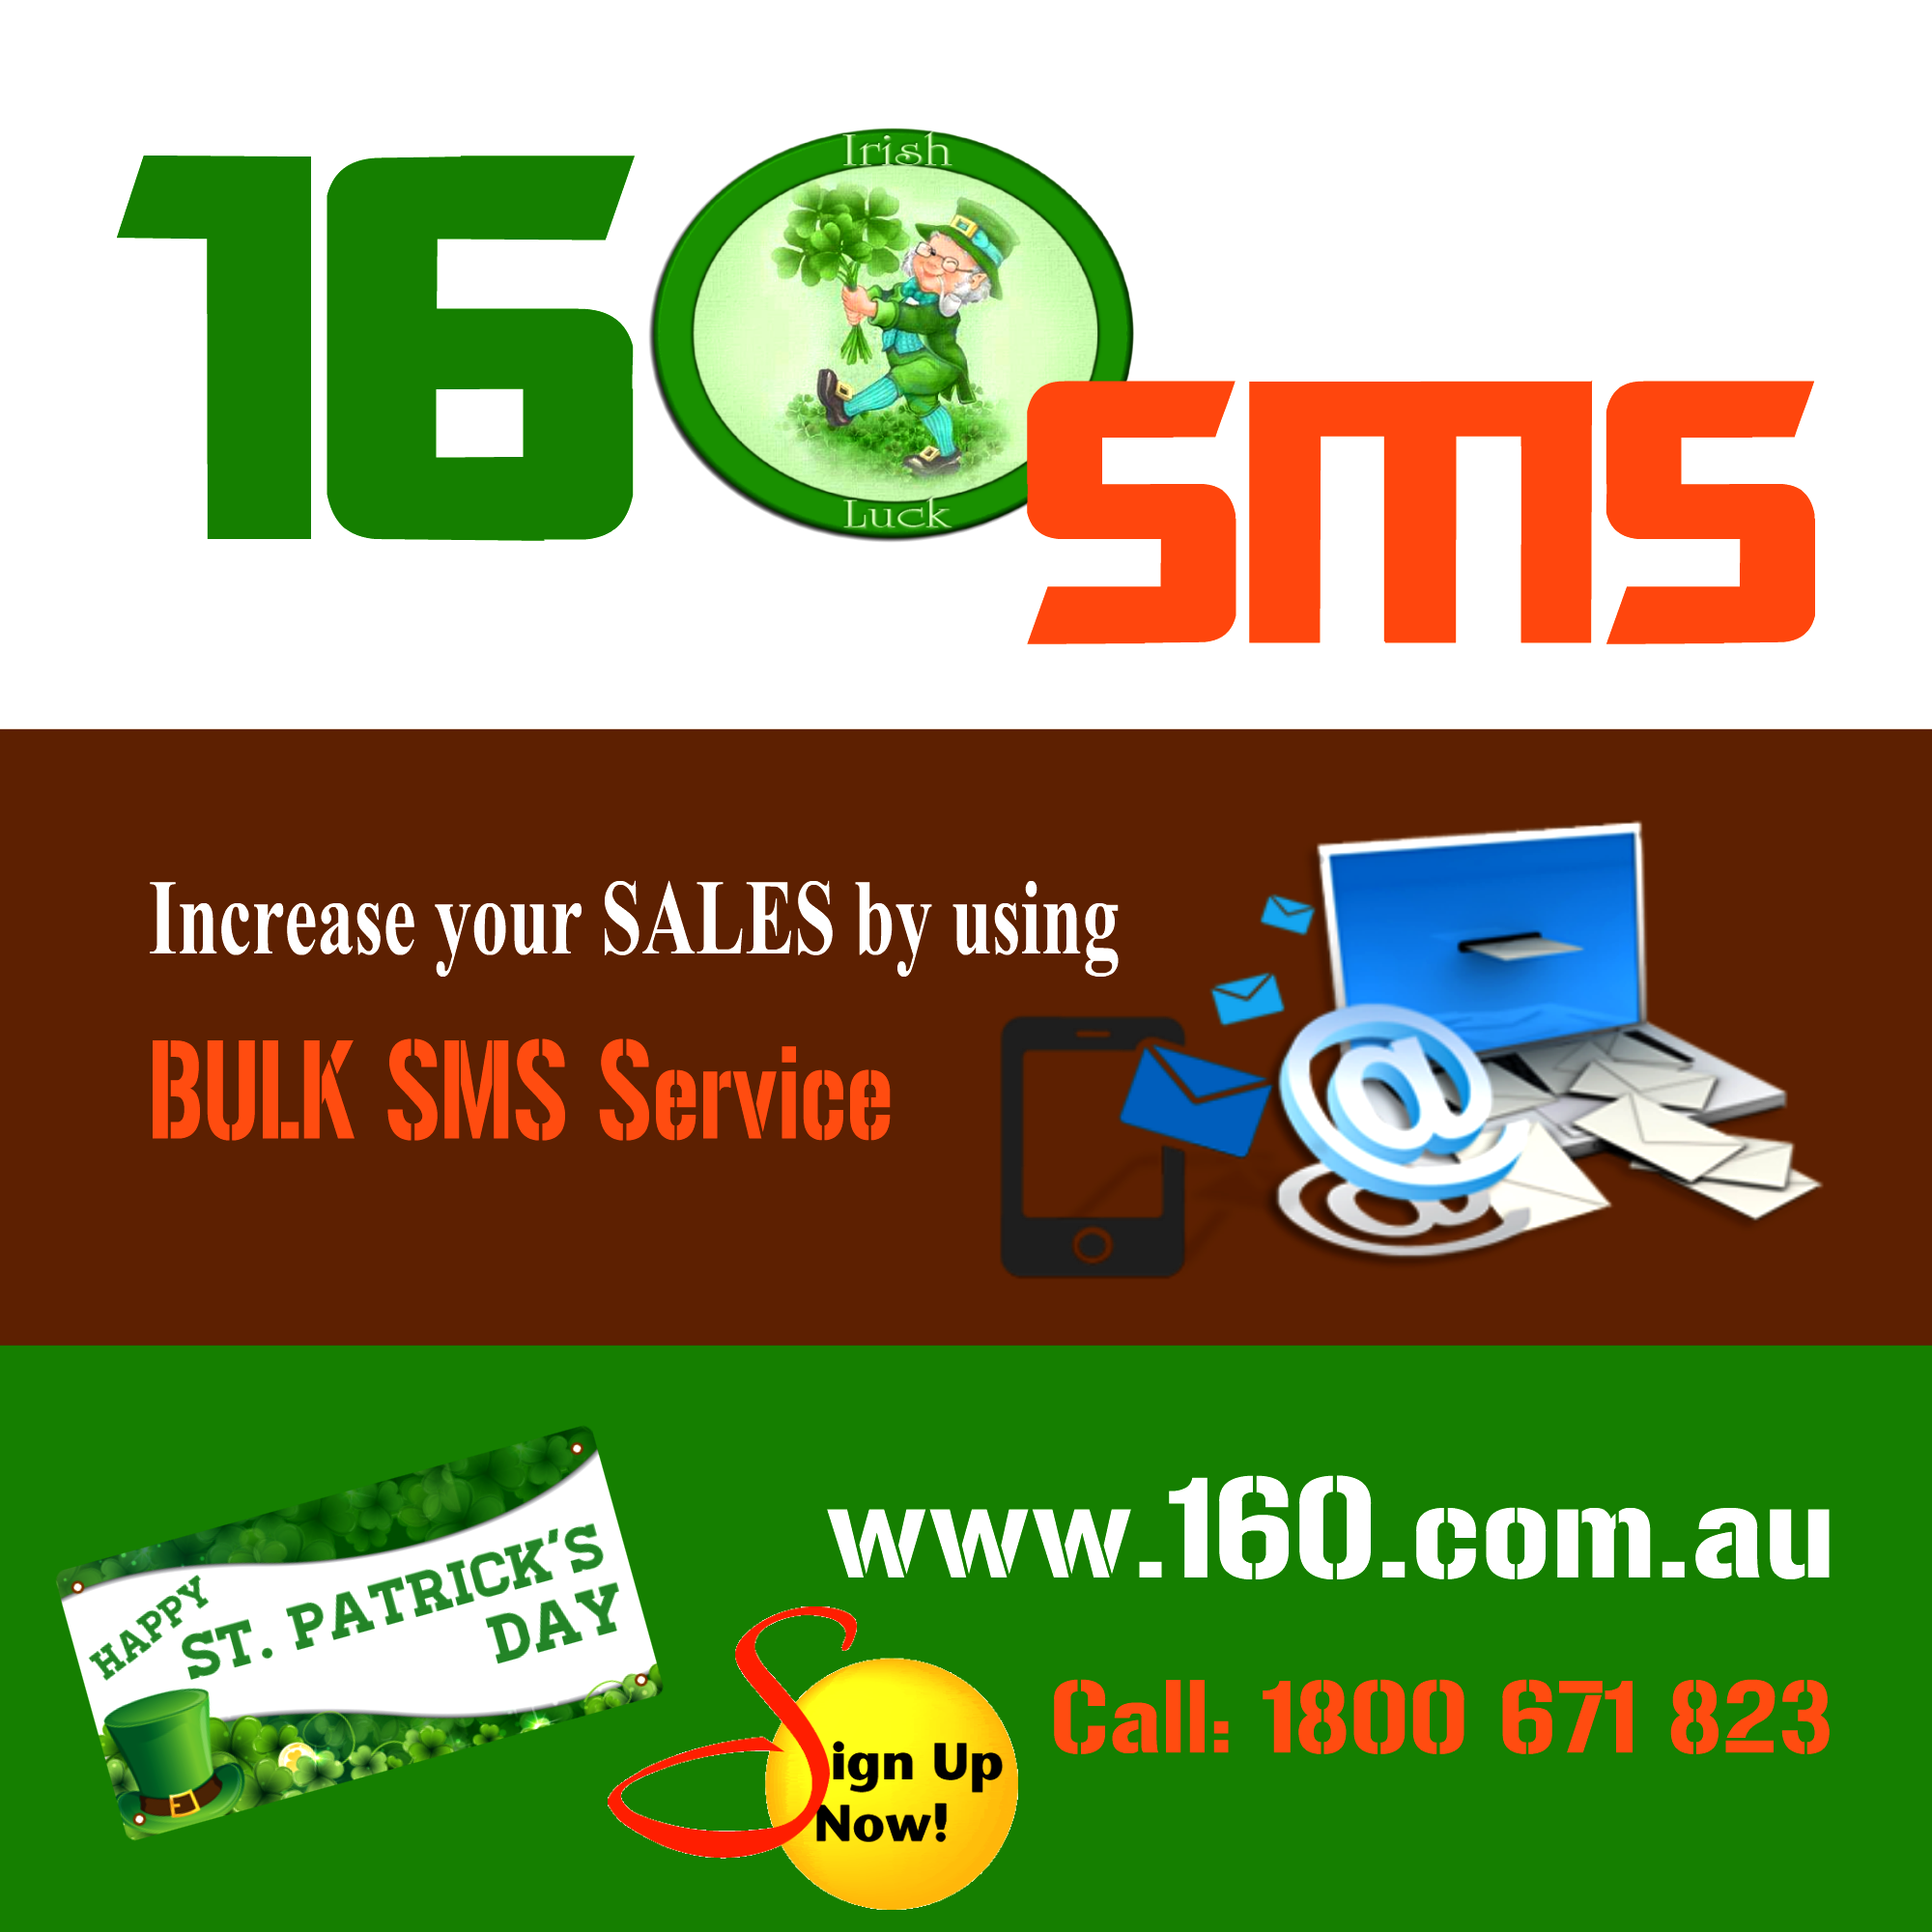 160 SMS 173 Happy St. Patricks Day!